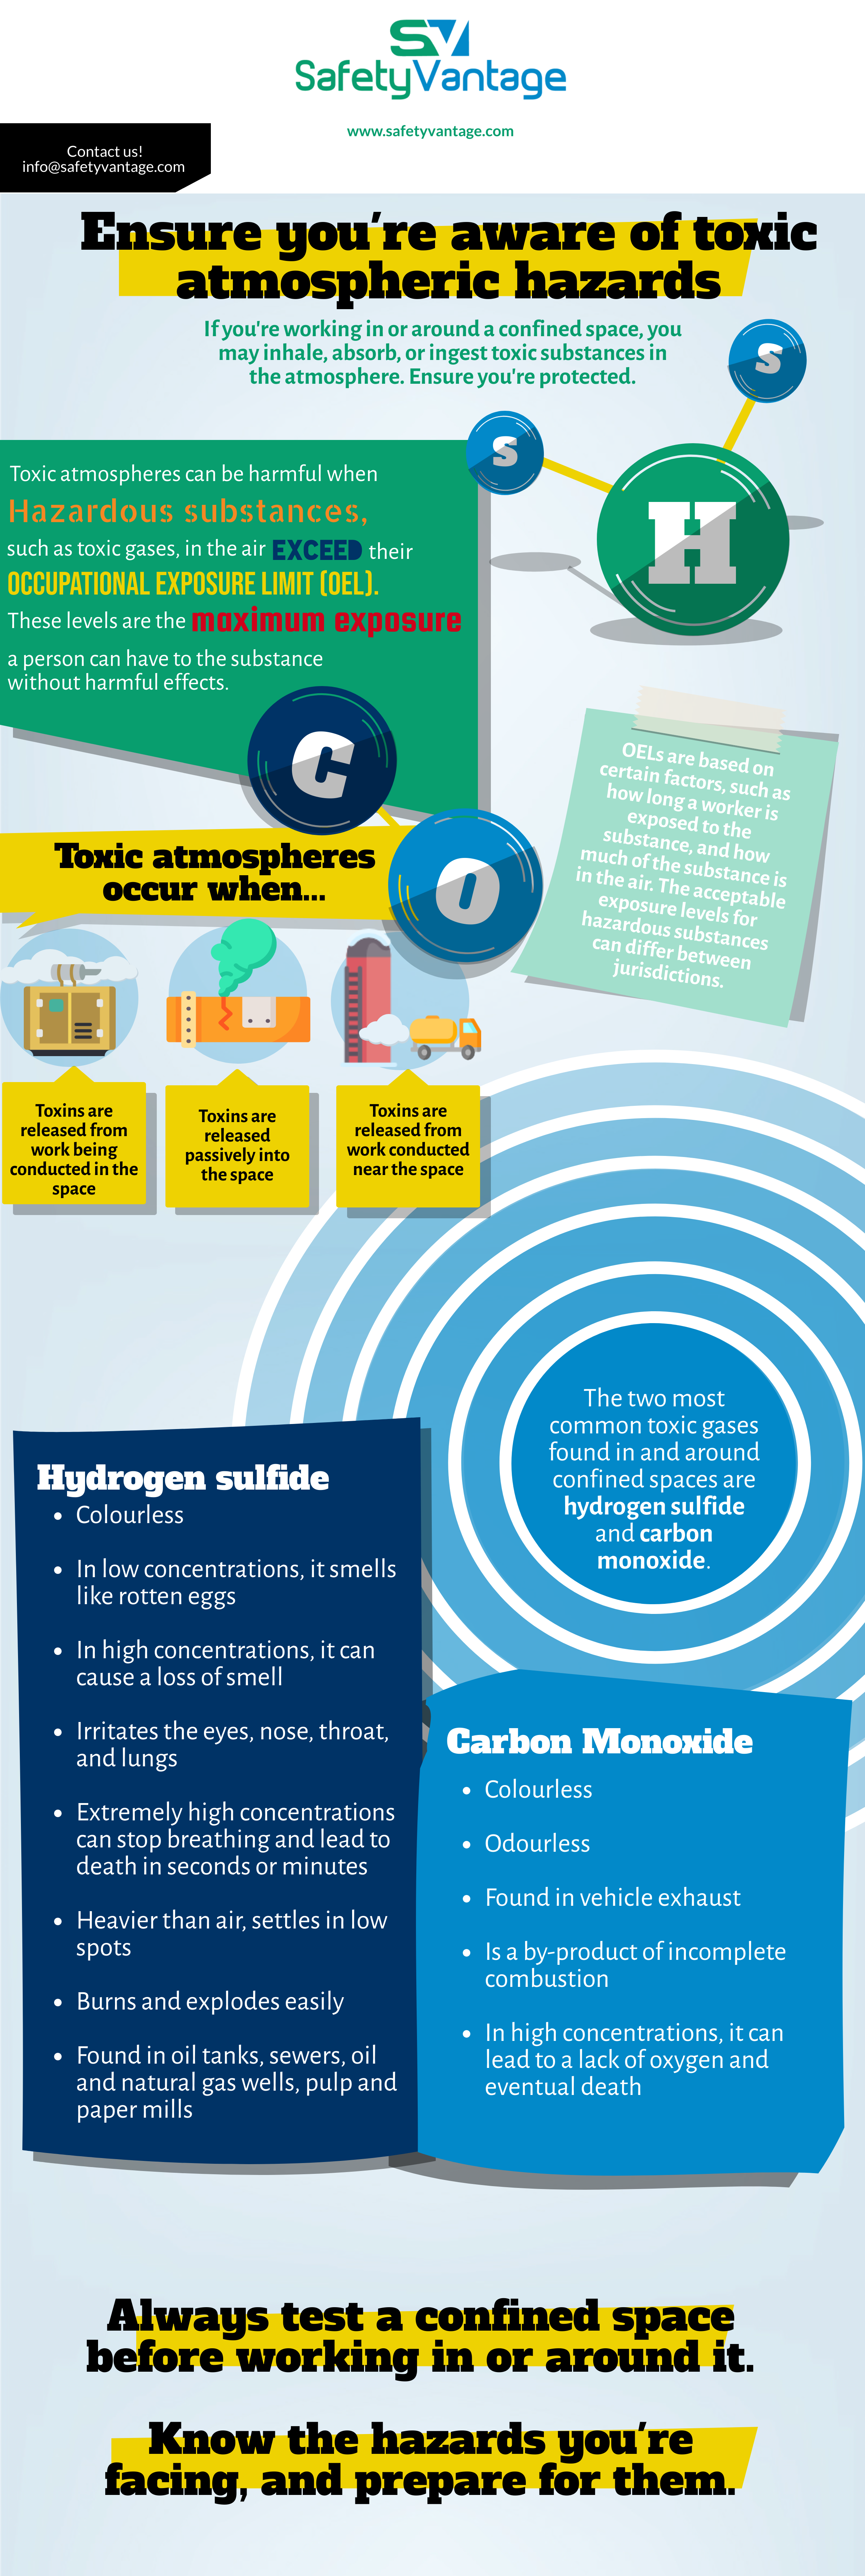 InfoGraphic - If you're working in a confined space, you may inhale, absorb, or ingest toxic substances in the atmosphere. Ensure you're protected.